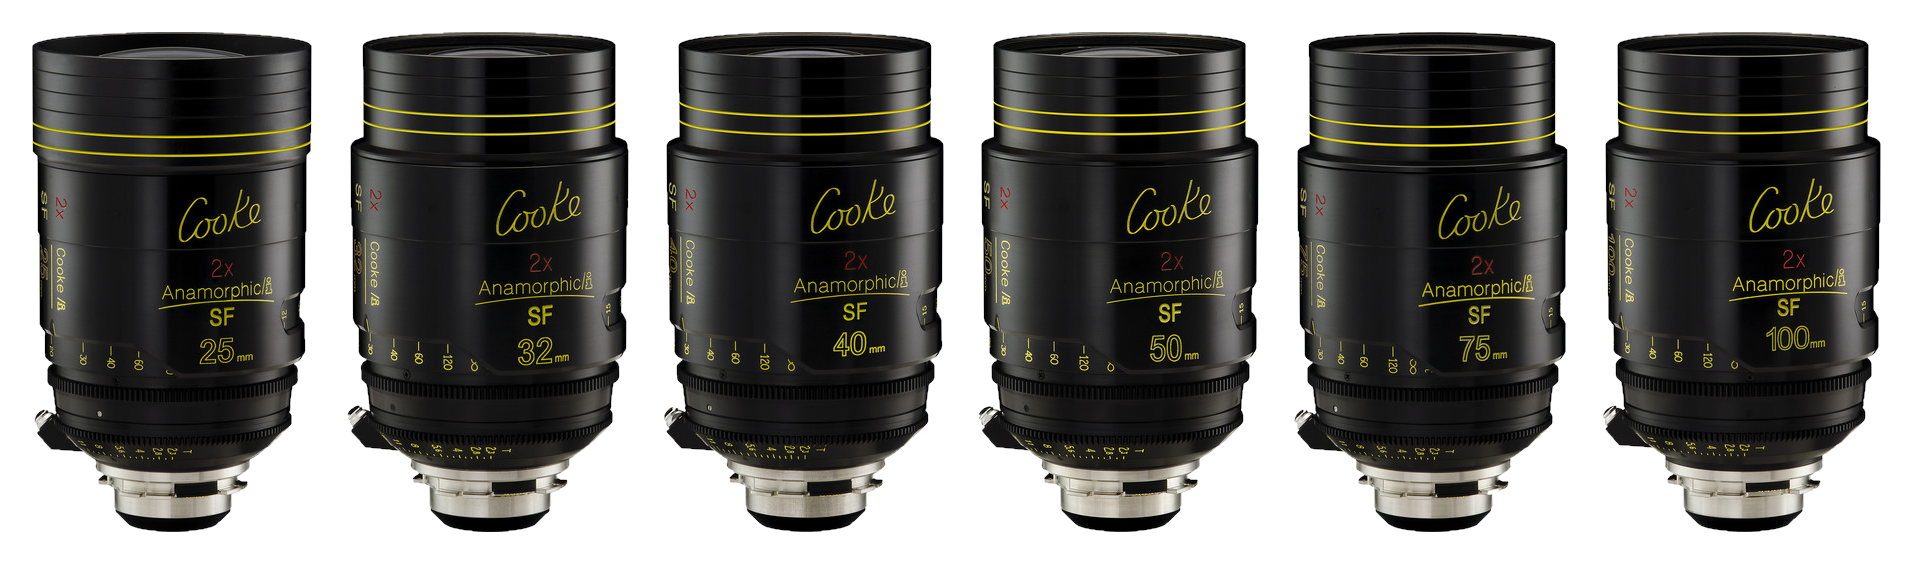 Cooke Anamorphic/i Special Flare